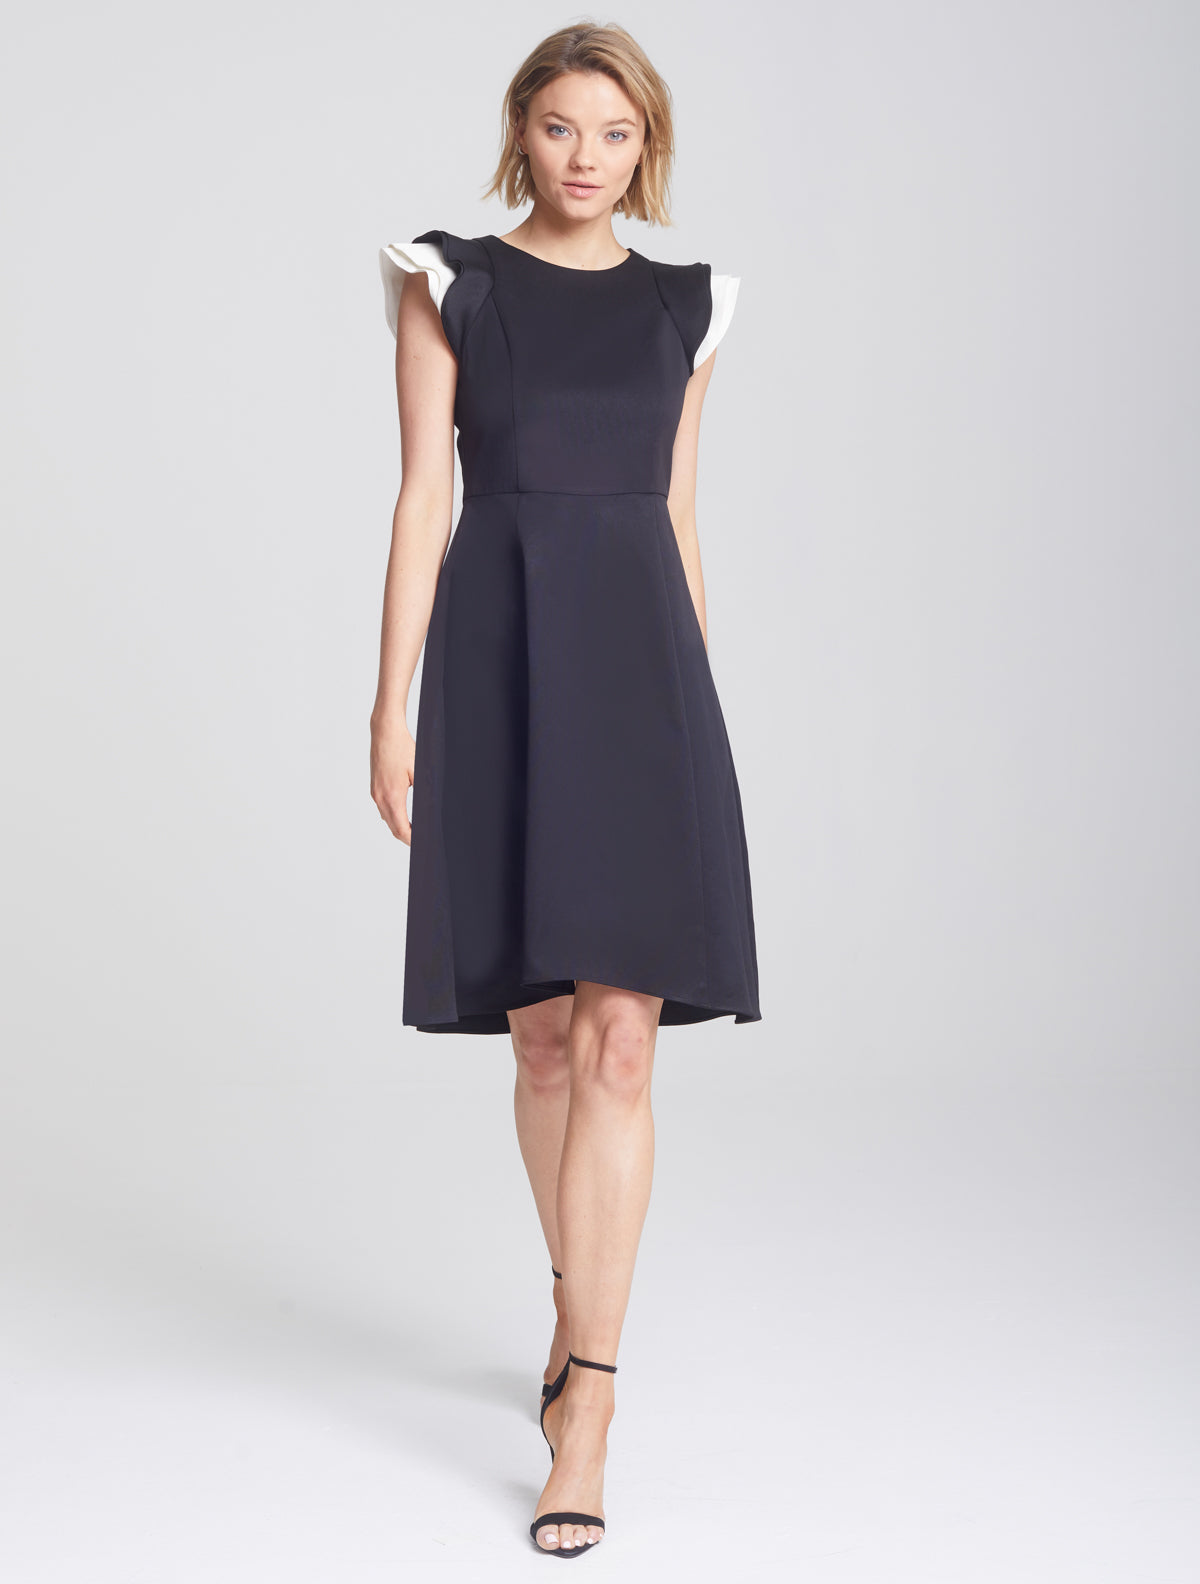 Ruffle Sleeve Dress - Halston